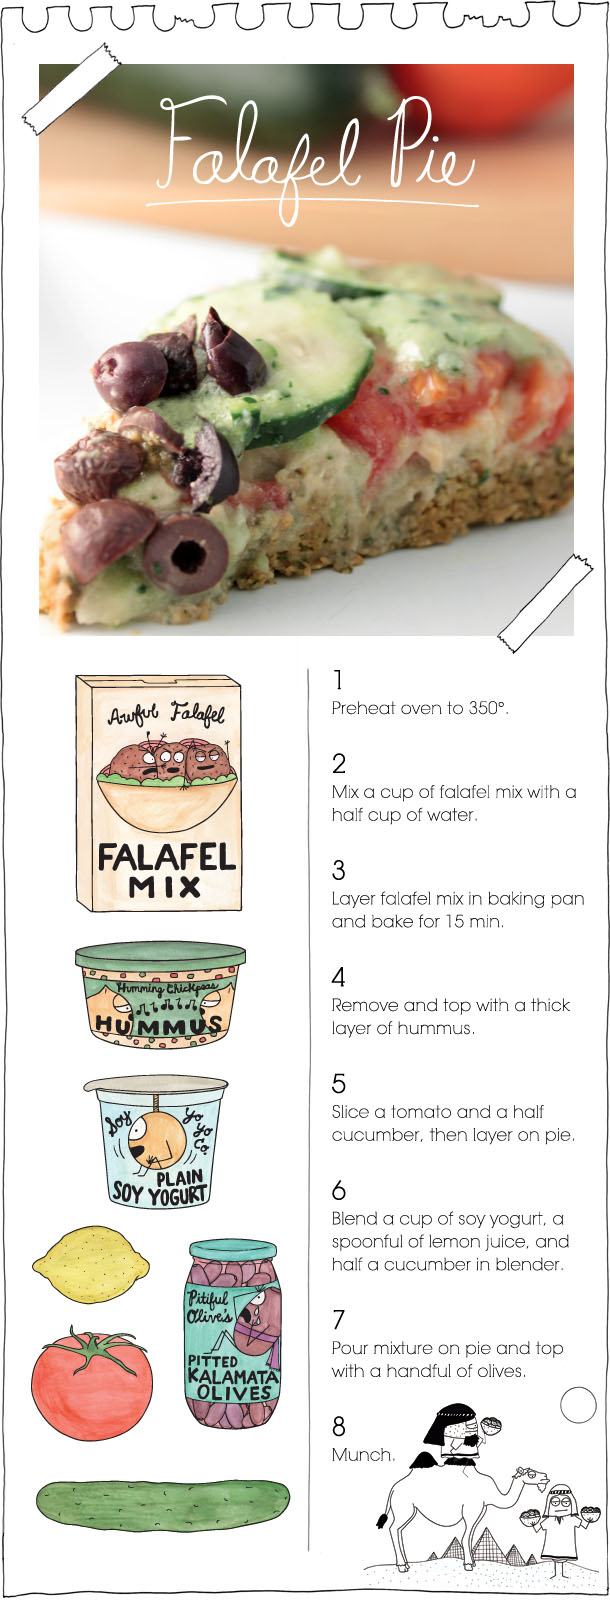 The Vegan Stoner's Falafel Pie